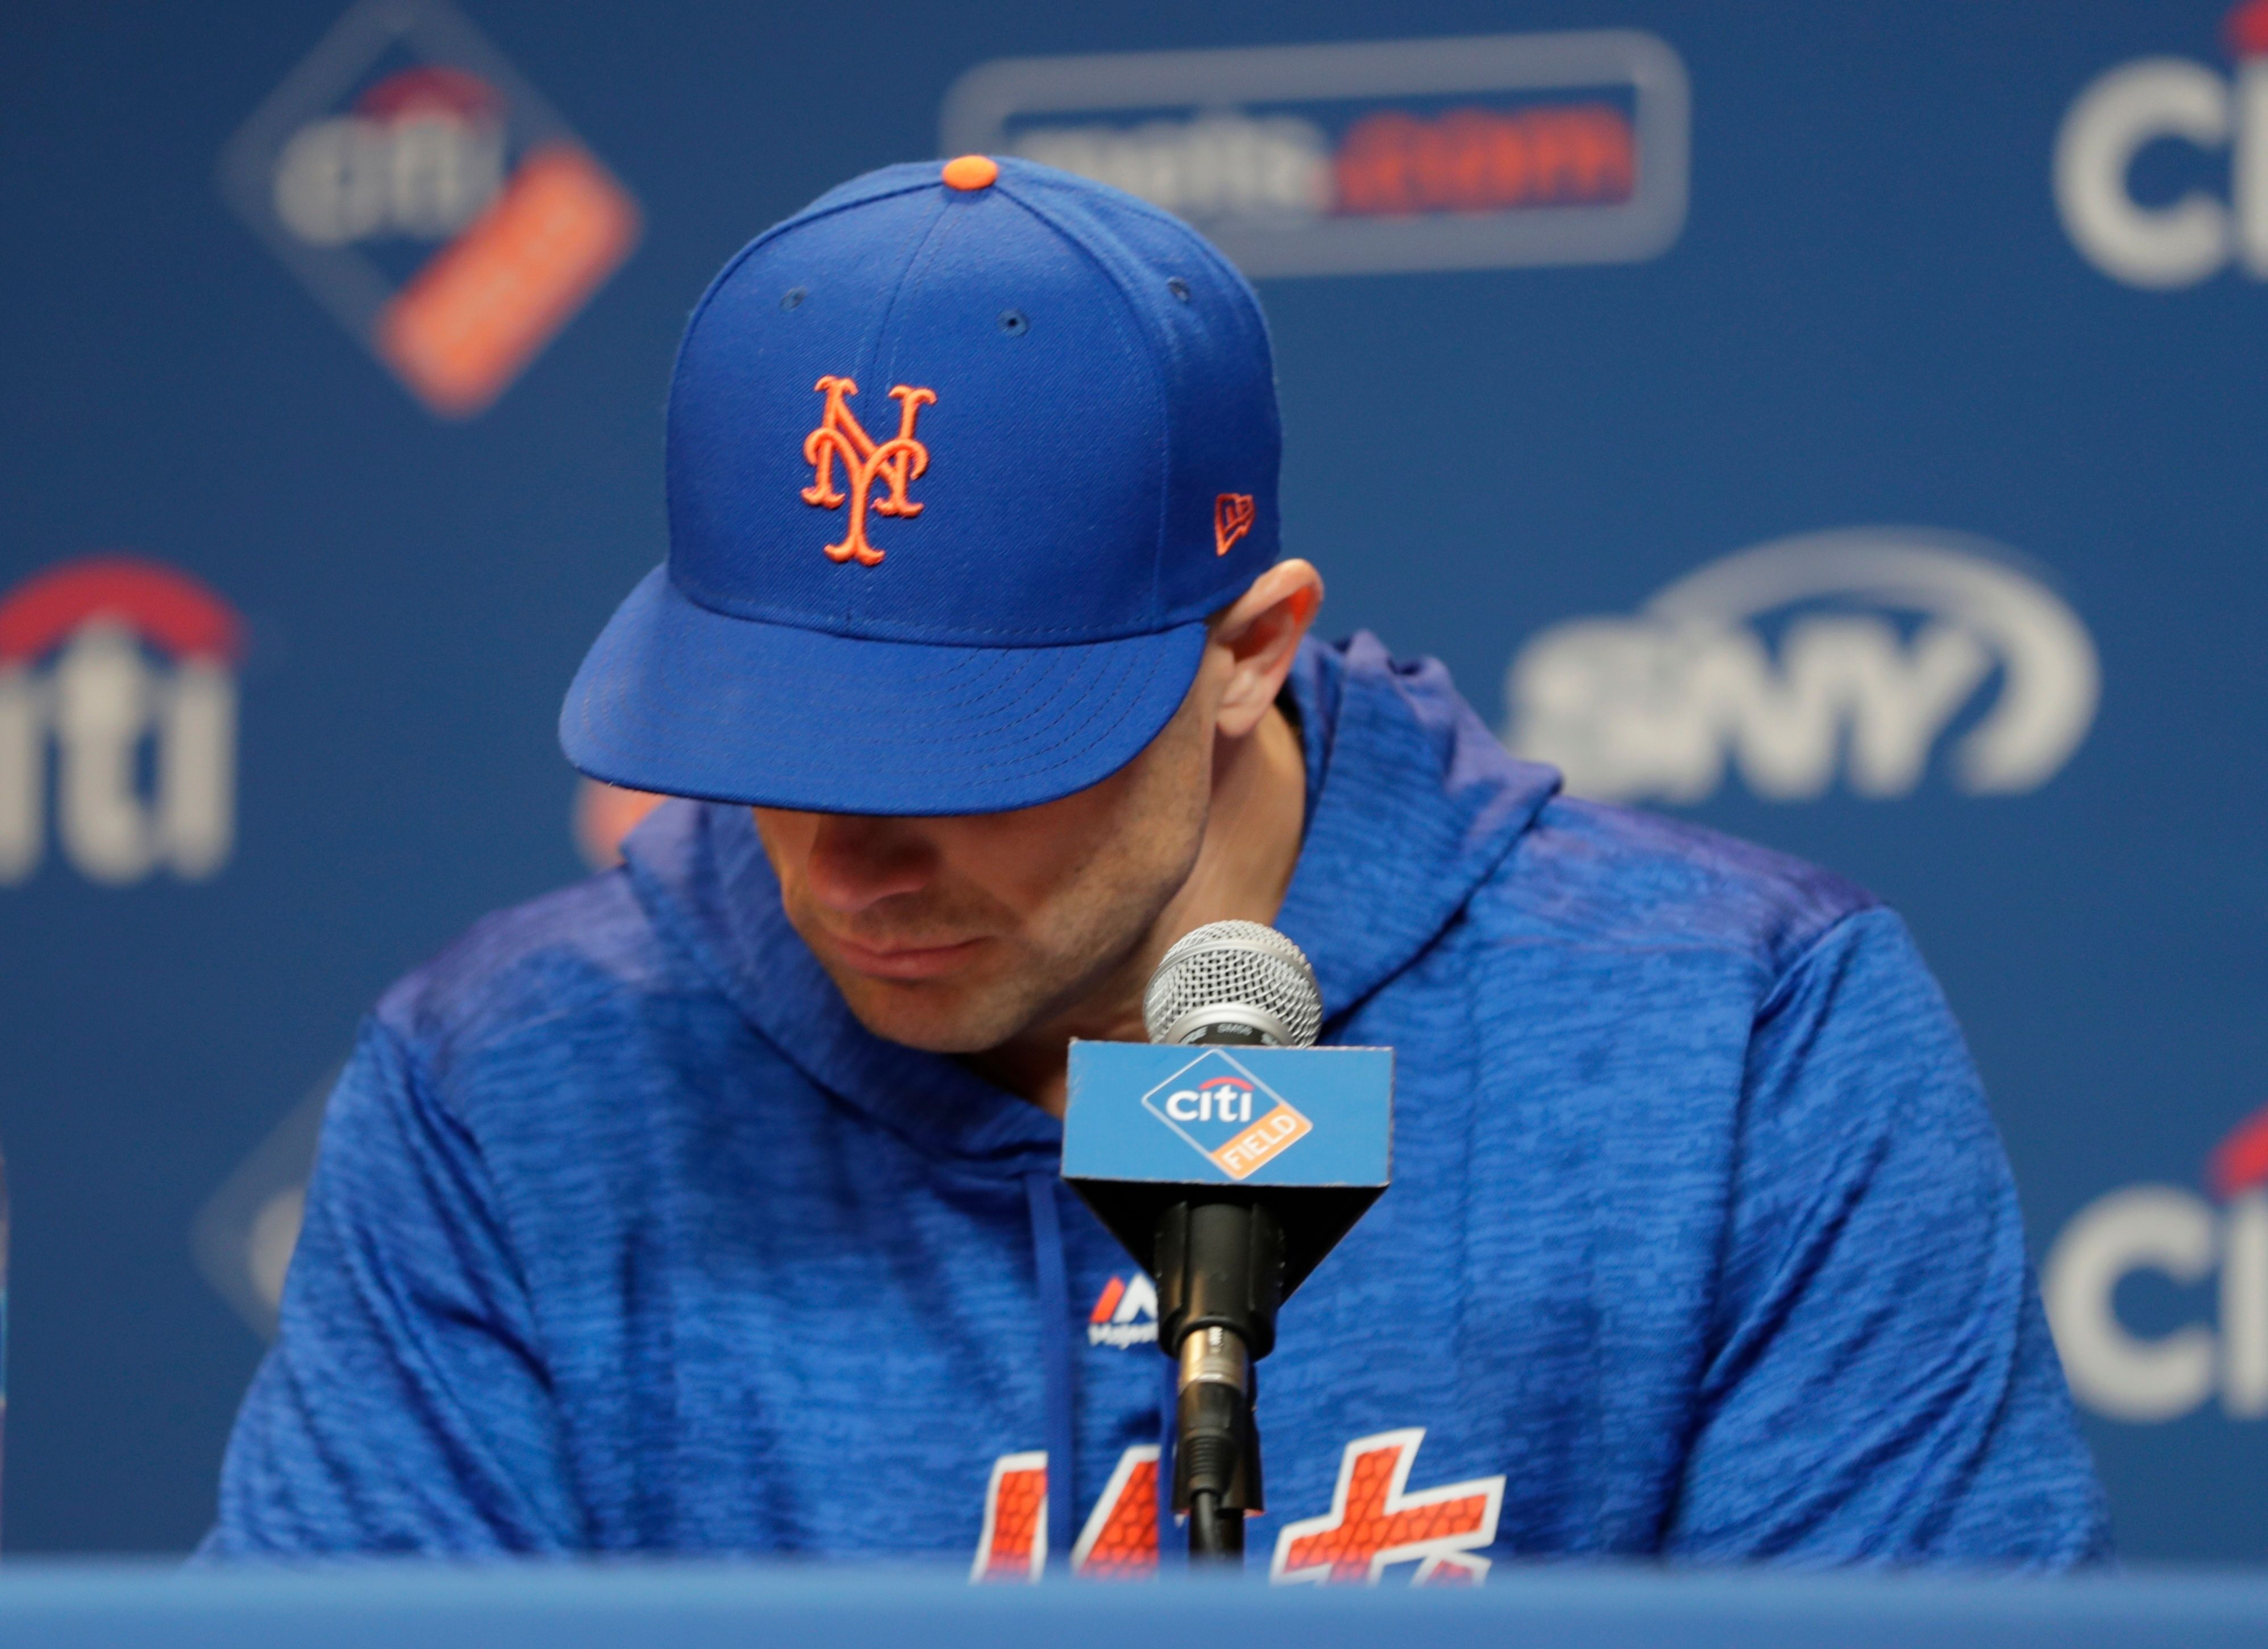 David Wright to make likely final start for Mets on Sept. 29